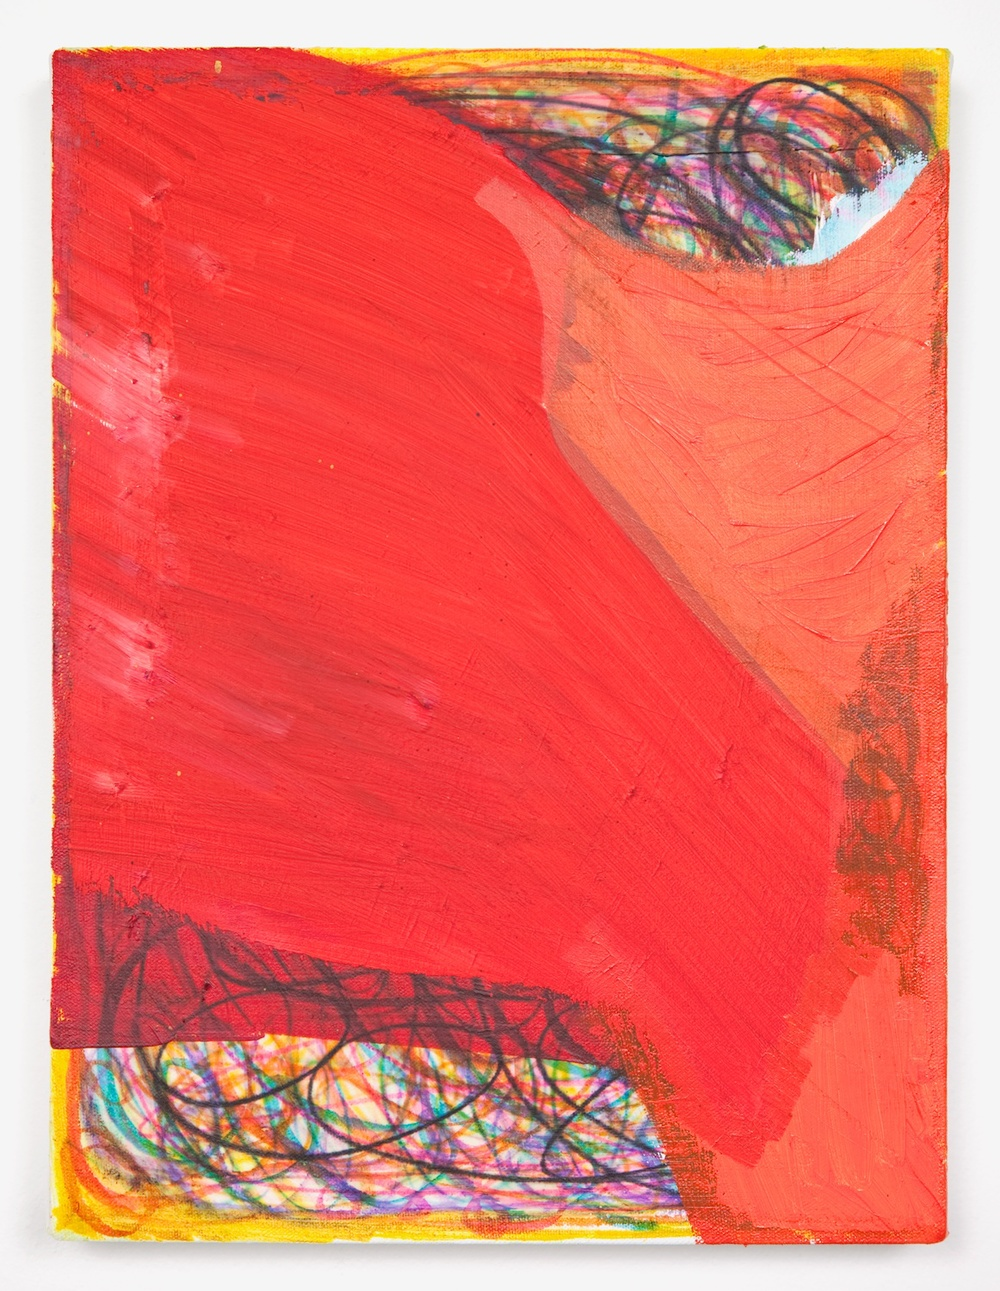 Joanne Greenbaum  Untitled  2011 Oil, acrylic and mixed media on linen 16h x 12w in JG031